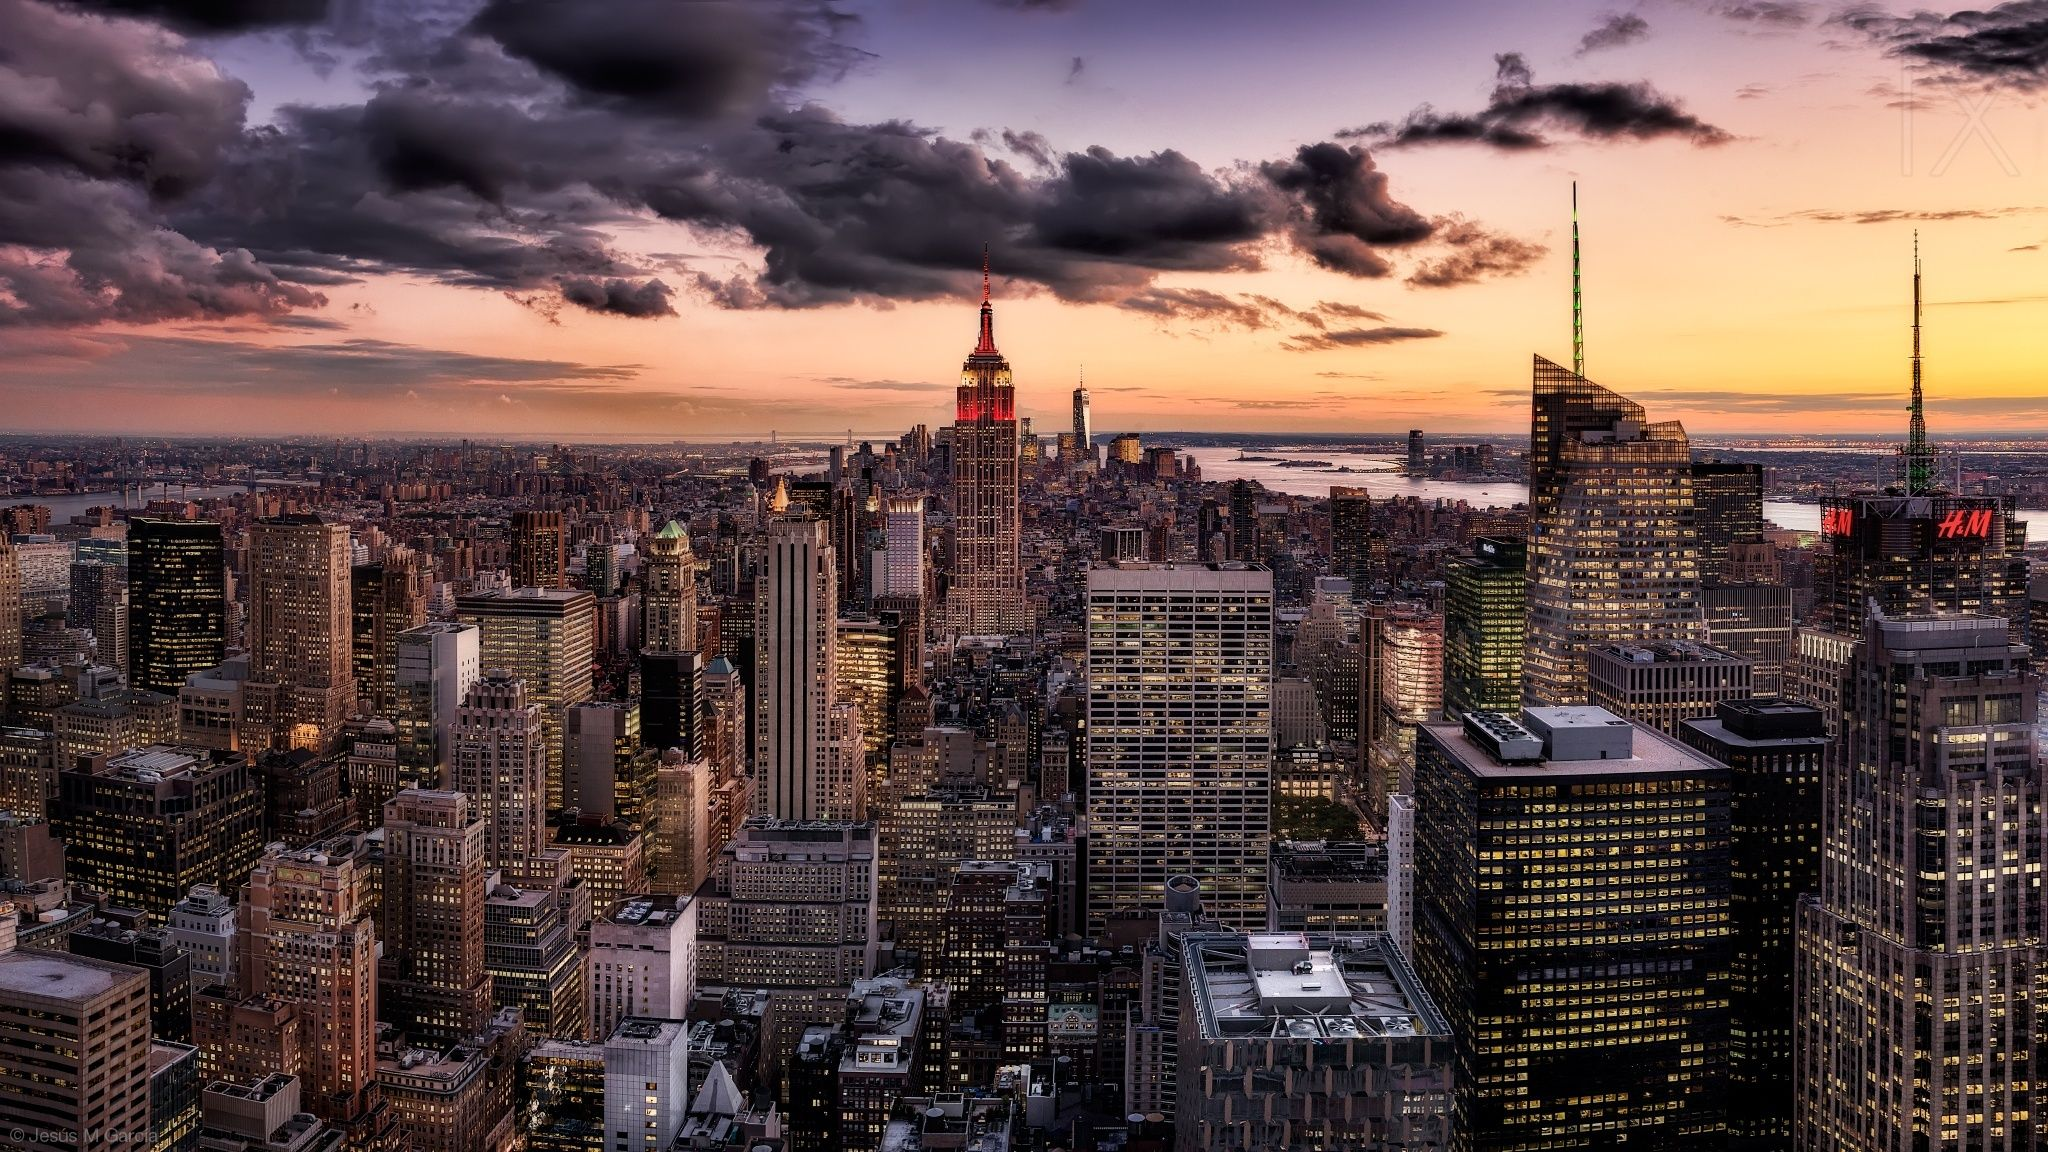 Sunset At Top Of The Rock By Jesus M Garcia The Rock Sunset Photo